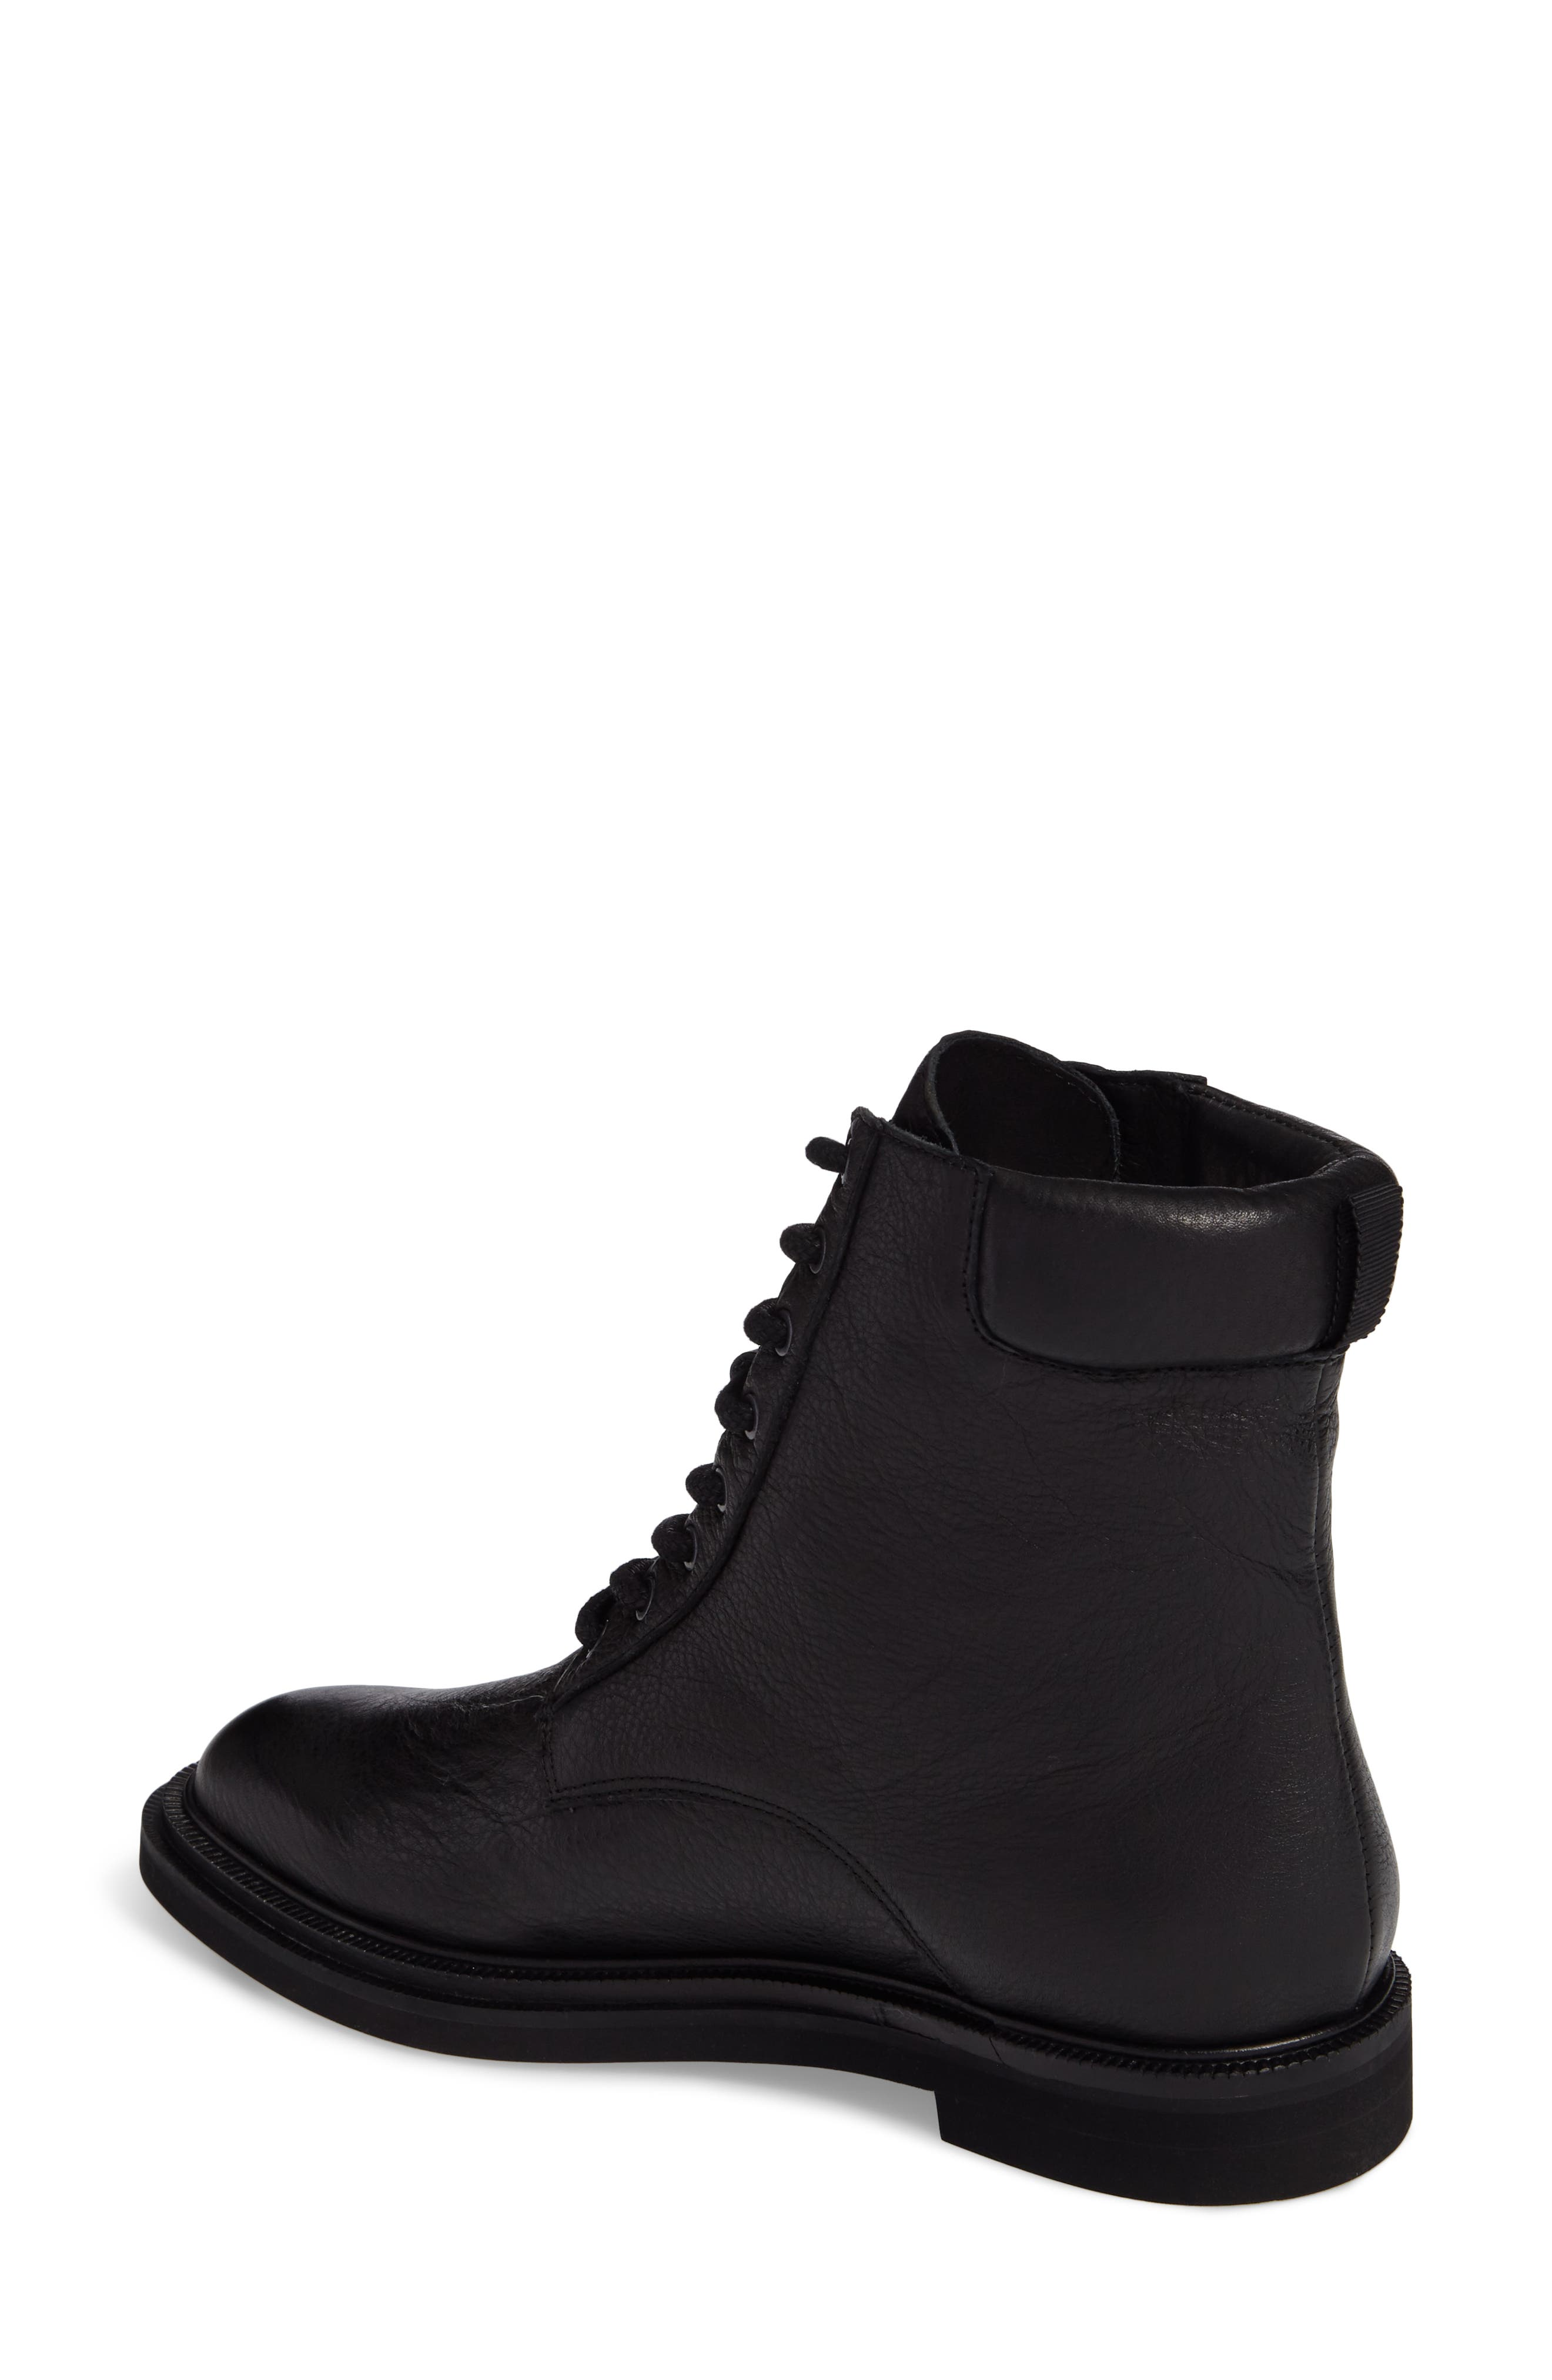 Alternate Image 2  - Kenneth Cole New York Ashton 2 Embroidered Boot (Women)